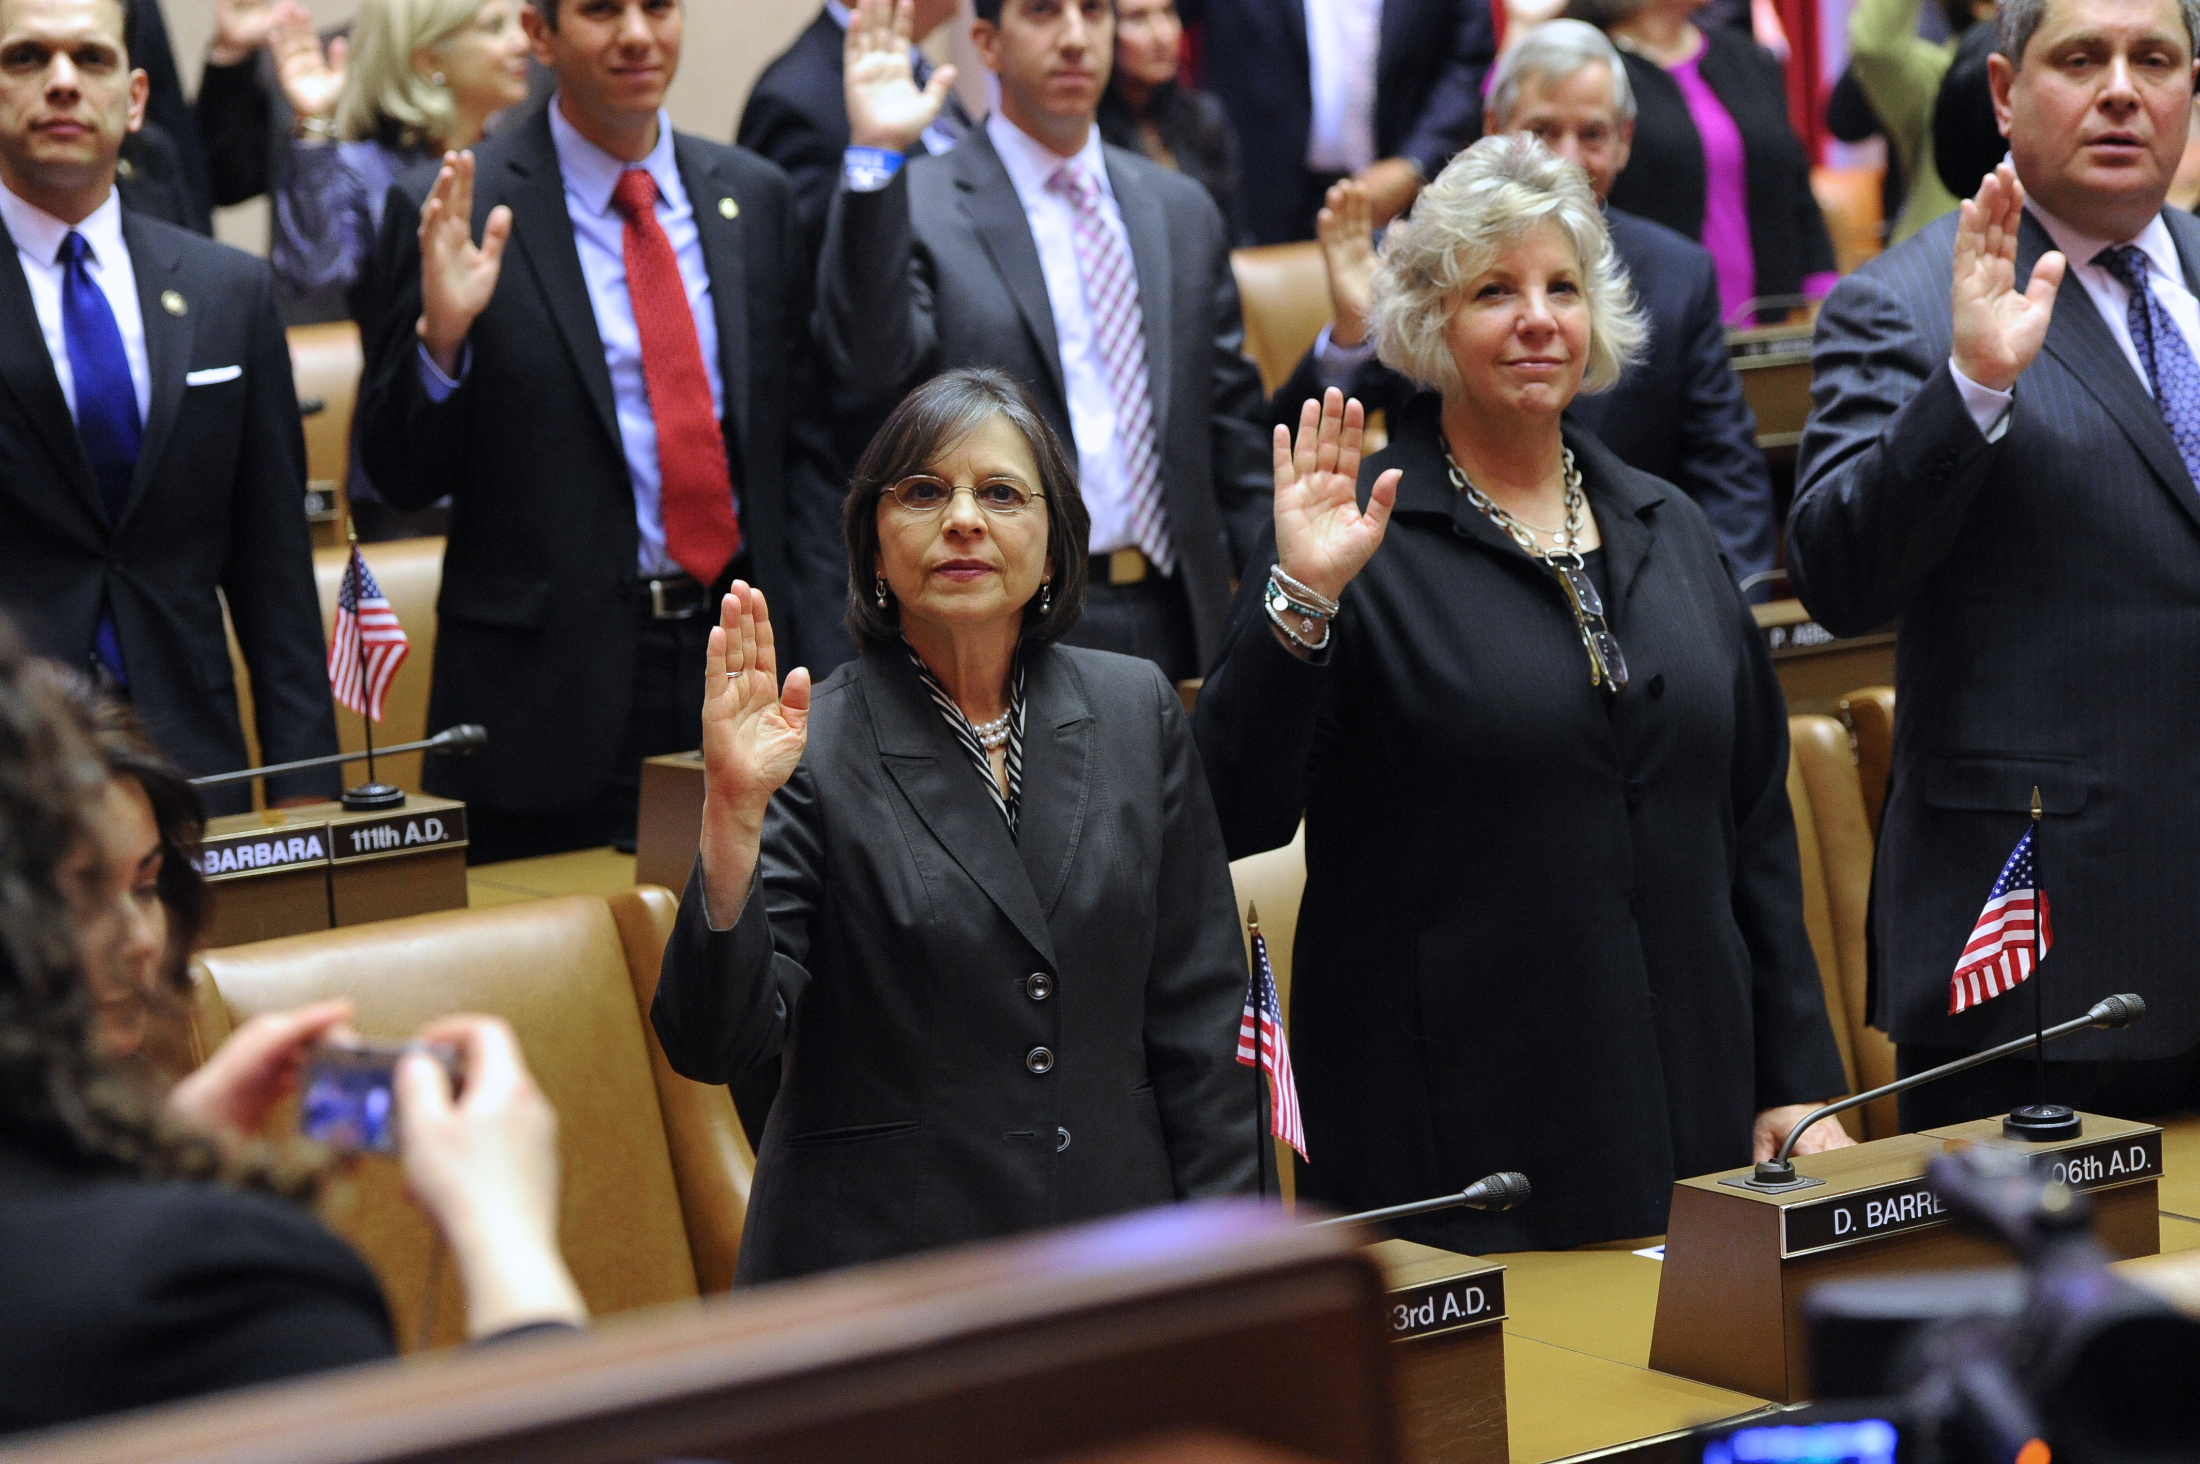 January 9, 2013 – Assemblywoman Donna Lupardo is sworn in for her fifth term in office.